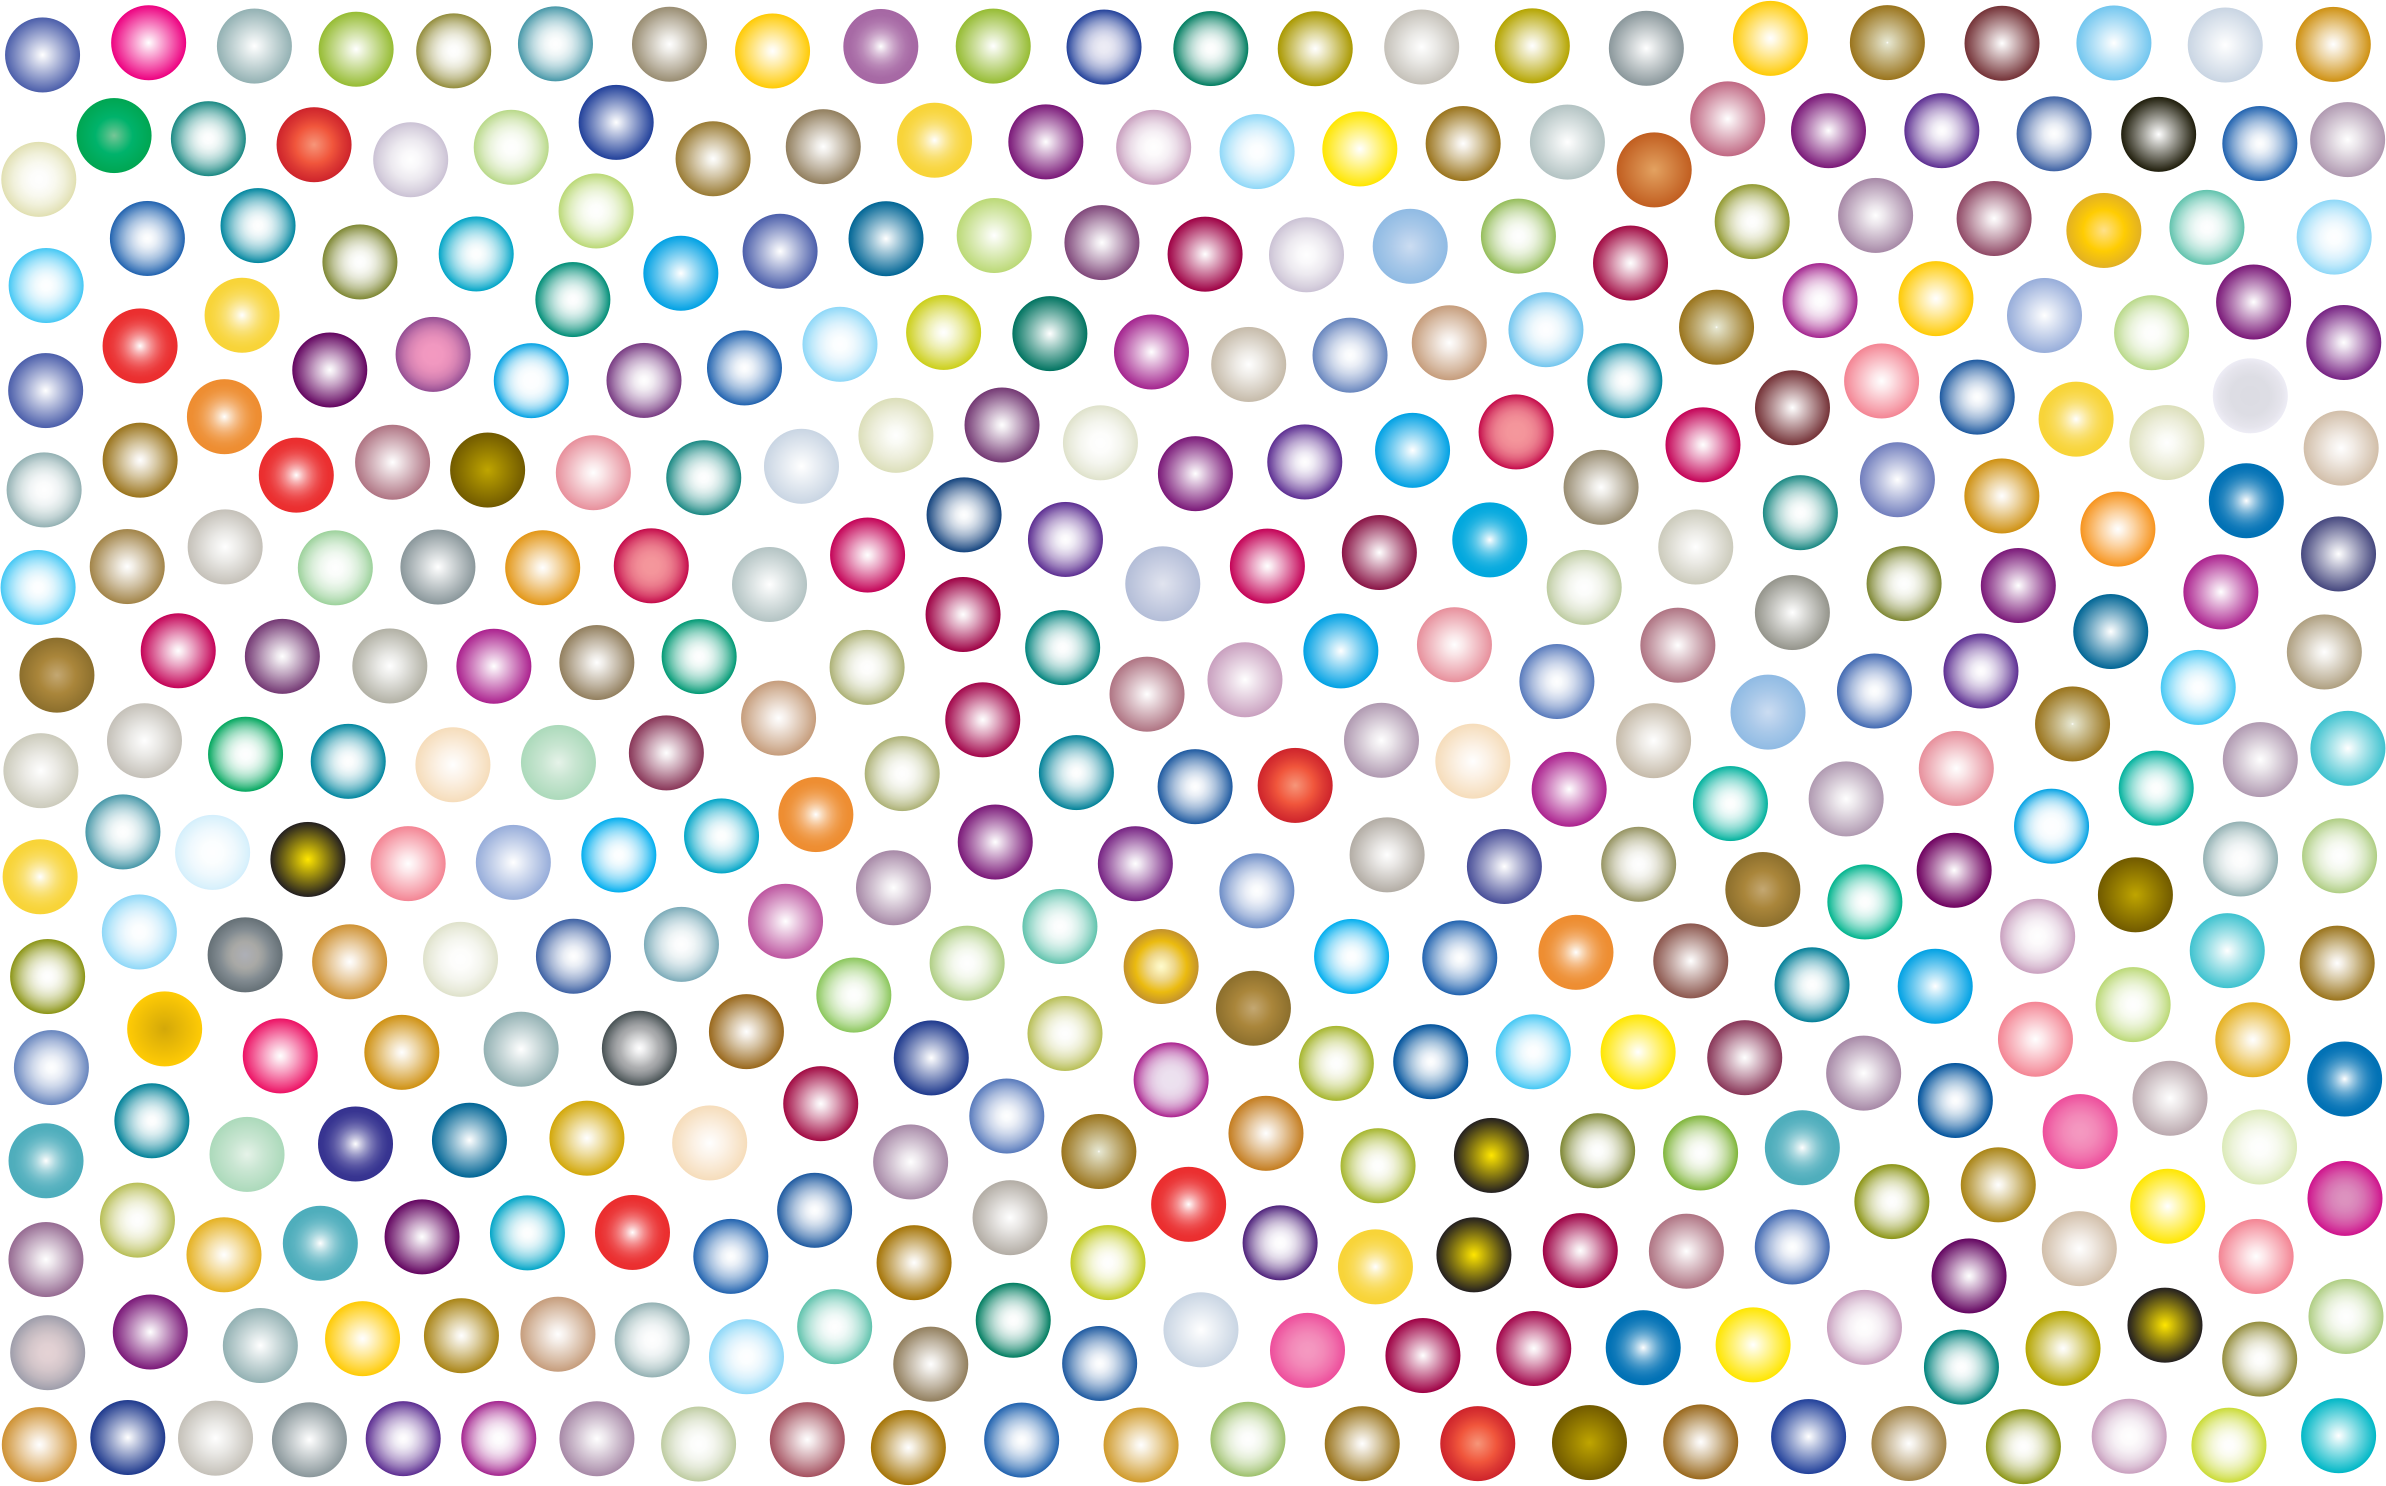 Prismatic Dots Background 3 No Background by GDJ